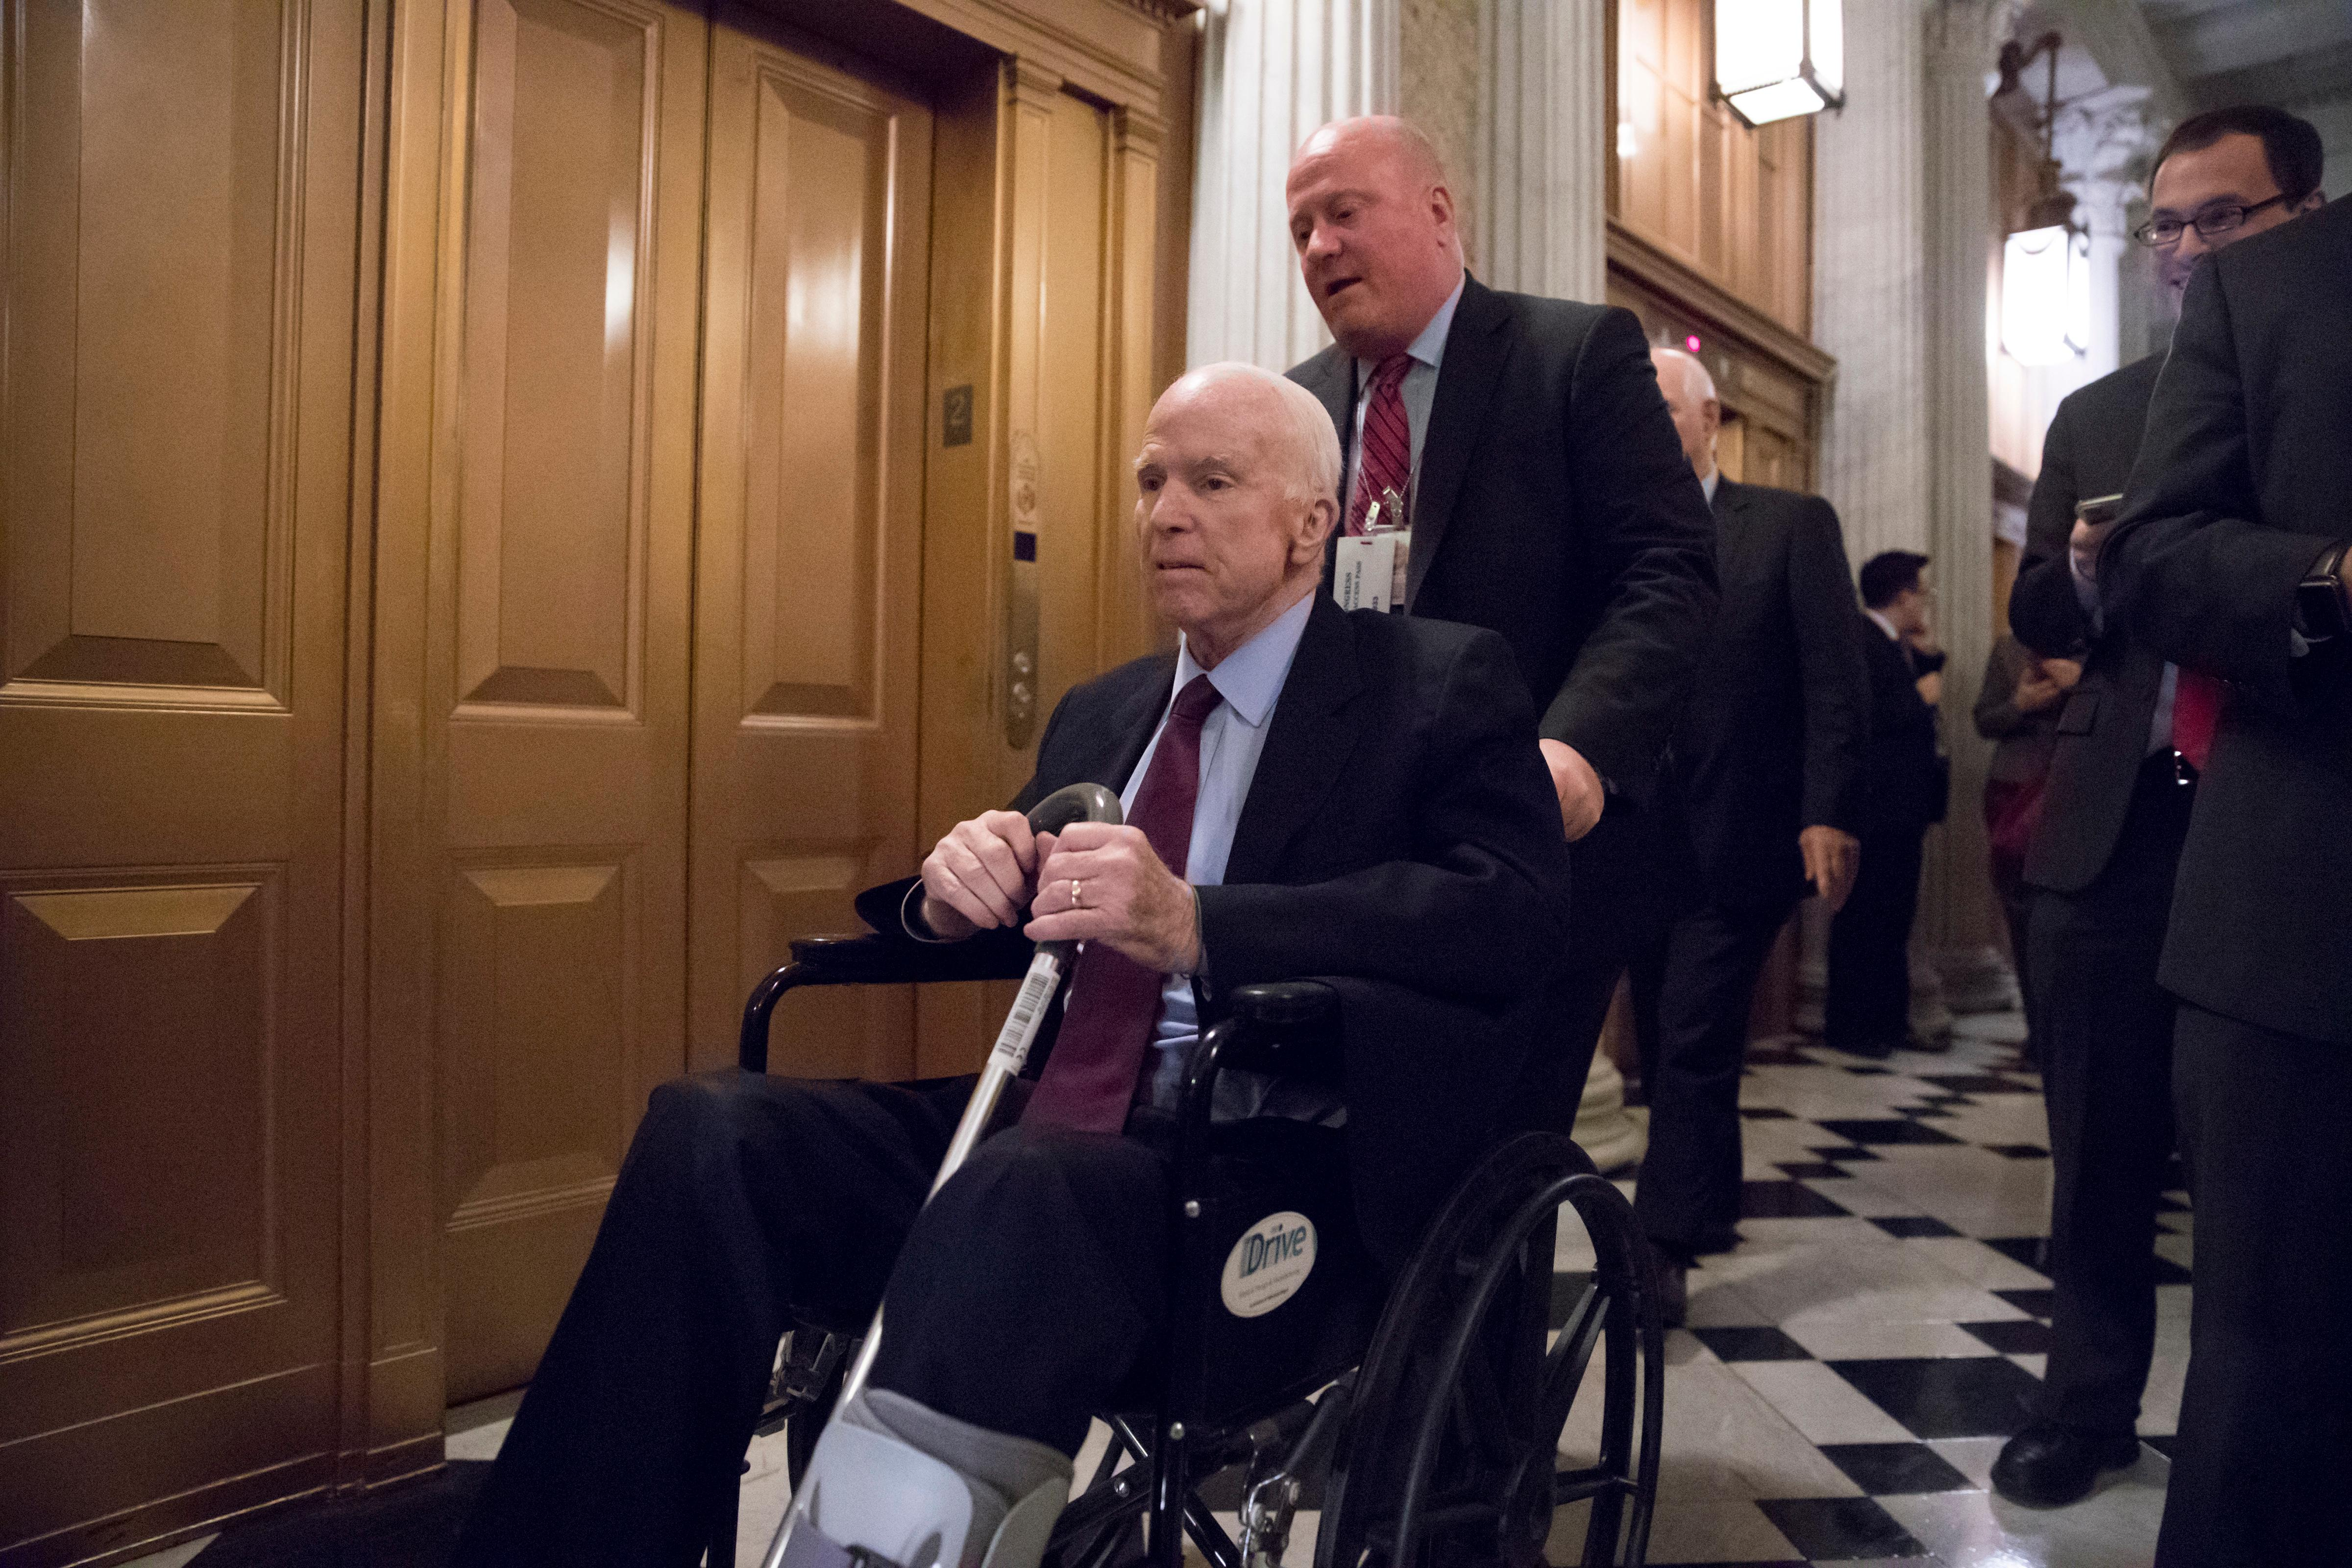 Senate Armed Services Chairman John McCain, R-Ariz., arrives for votes on Capitol Hill in Washington, Monday evening, Nov. 27, 2017. President Donald Trump and Senate Republicans are scrambling to change a Republican tax bill in an effort to win over holdout GOP senators and pass a tax package by the end of the year. (AP Photo/J. Scott Applewhite)